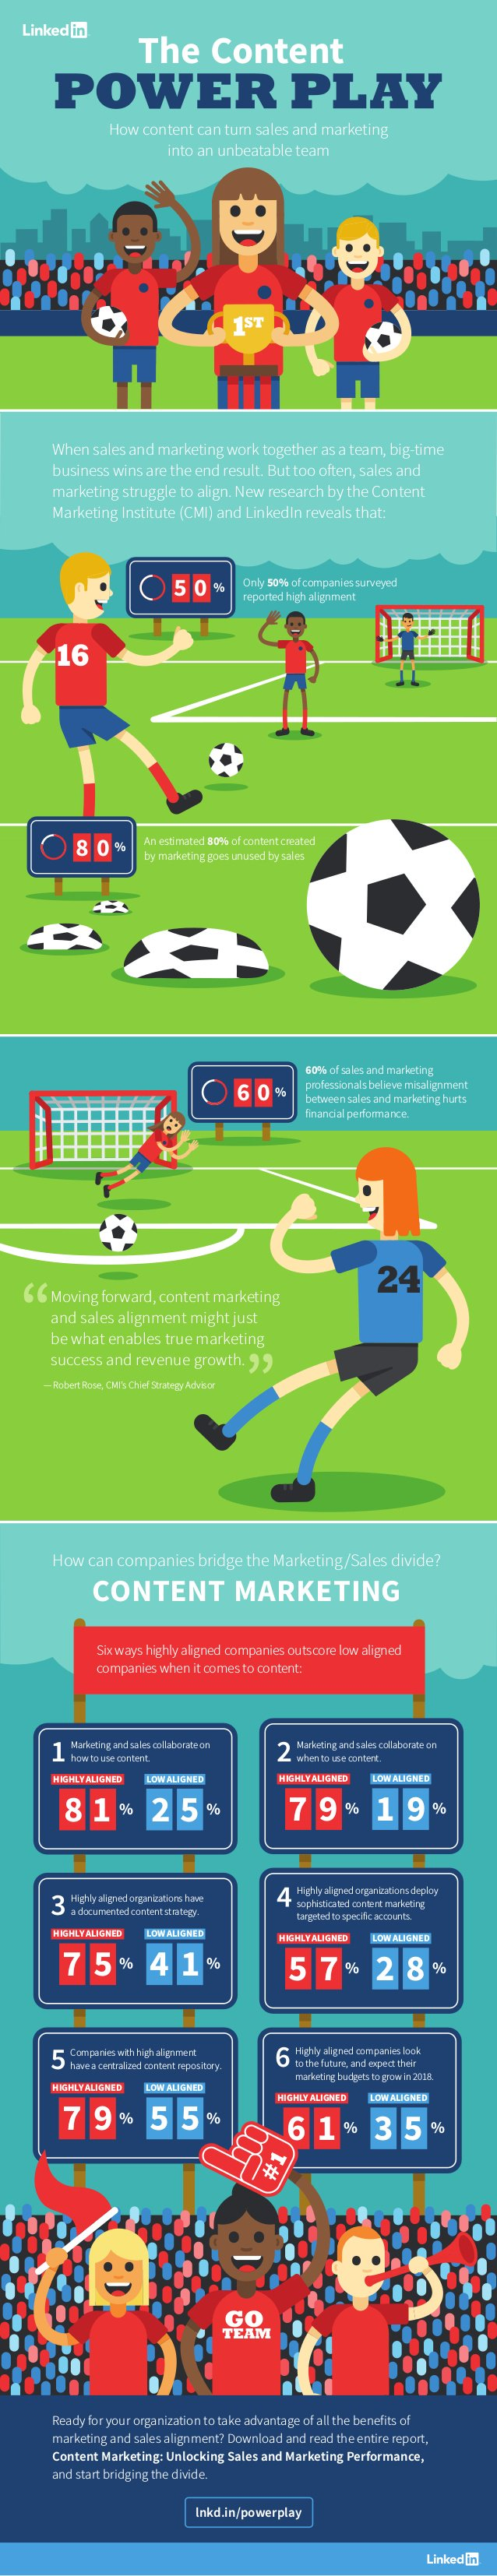 Infographic: Aligning Marketing & Sales Content